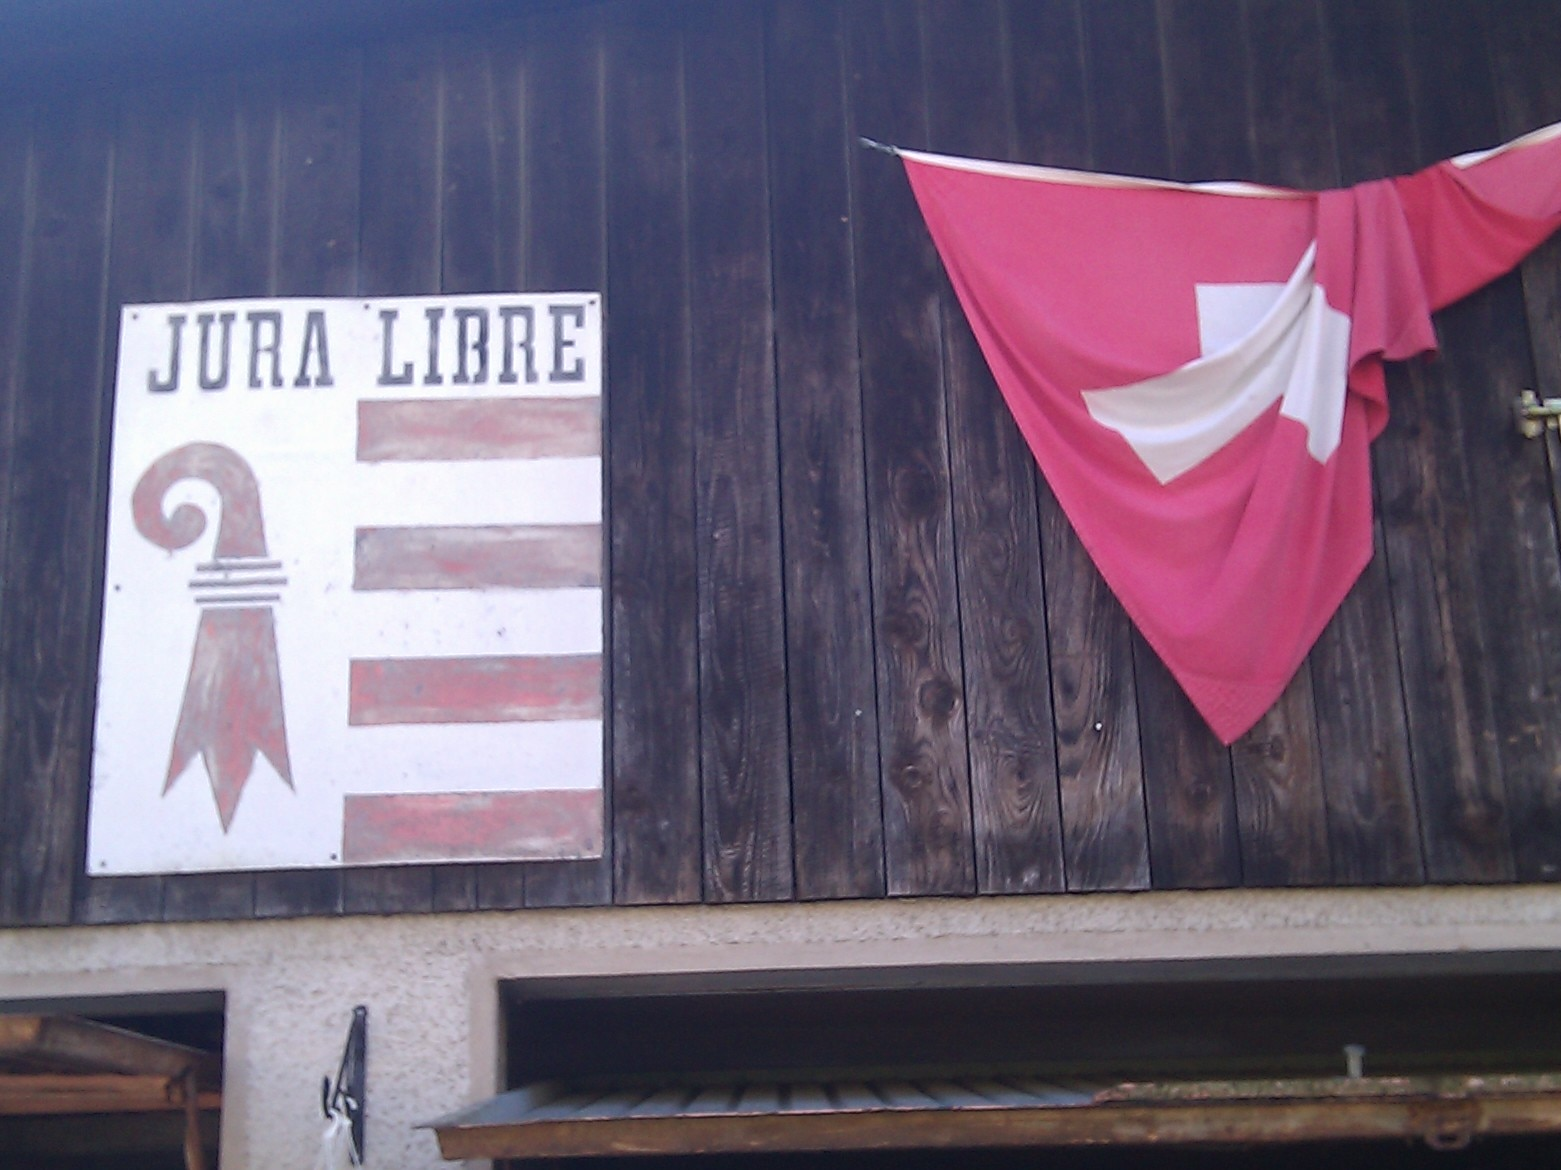 The Jura Libre banner likely dates from the late 1960s when the region fought (mostly non-violently) to split from Bern.